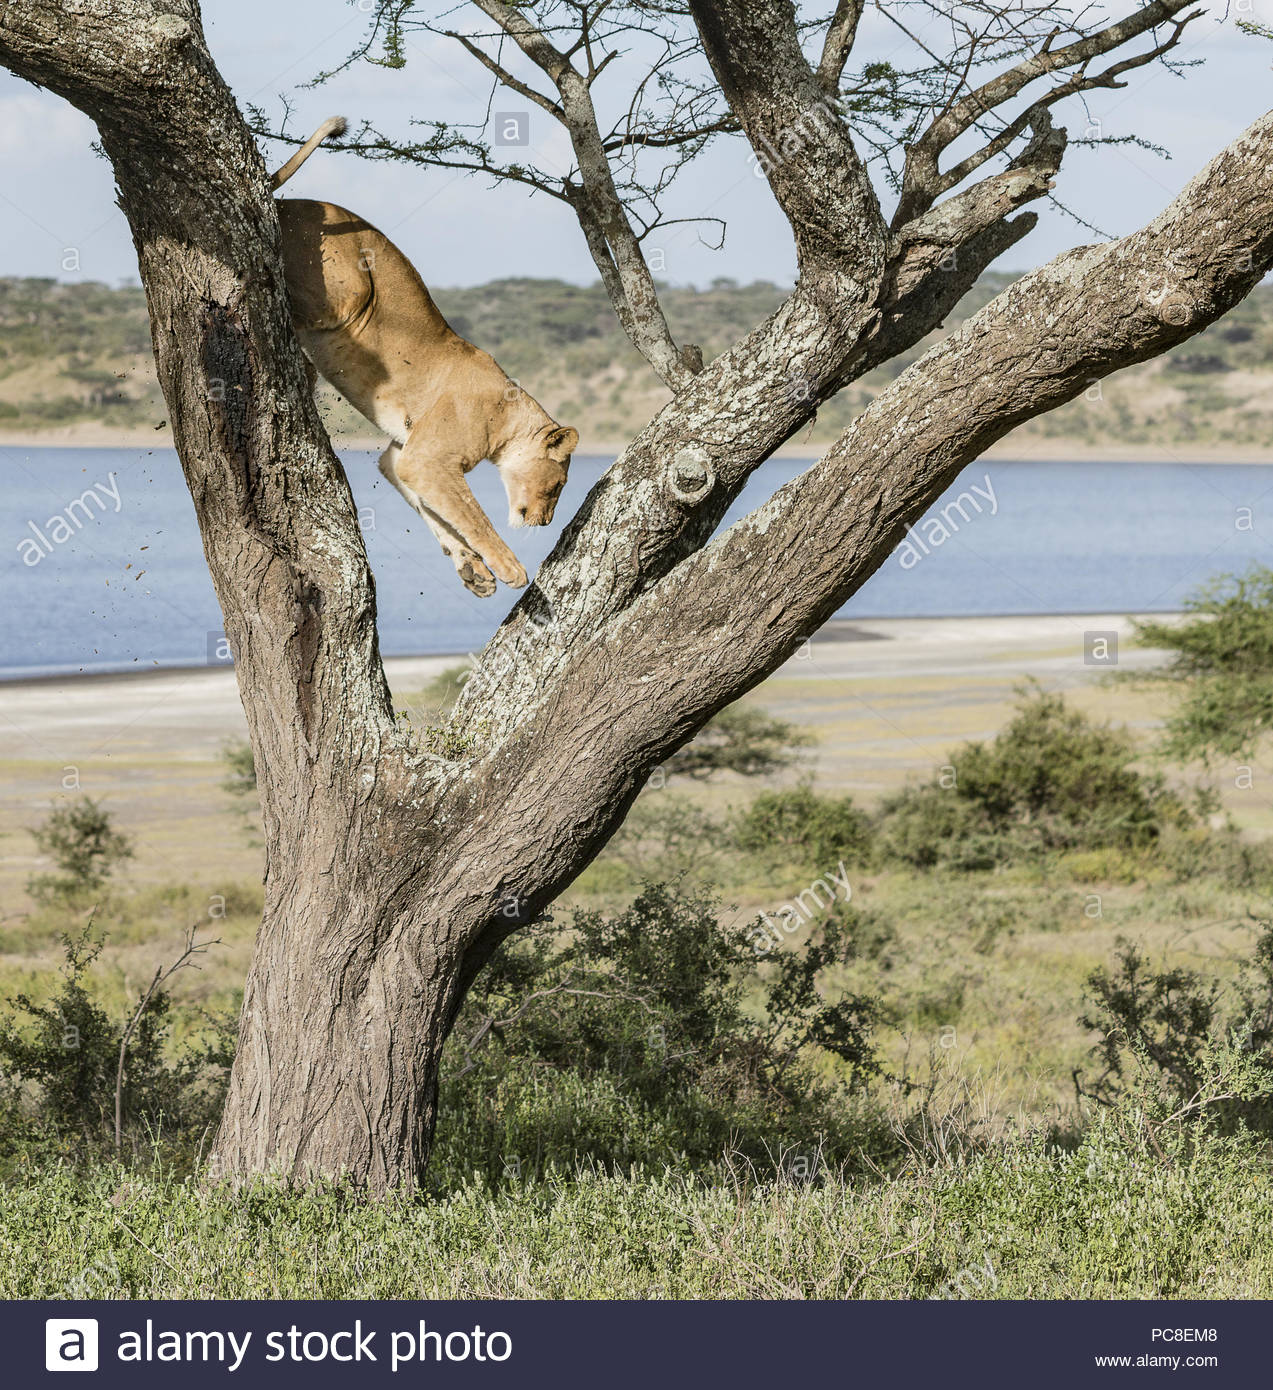 A lioness leaps down from the limb of an Acacia tree. - Stock Image